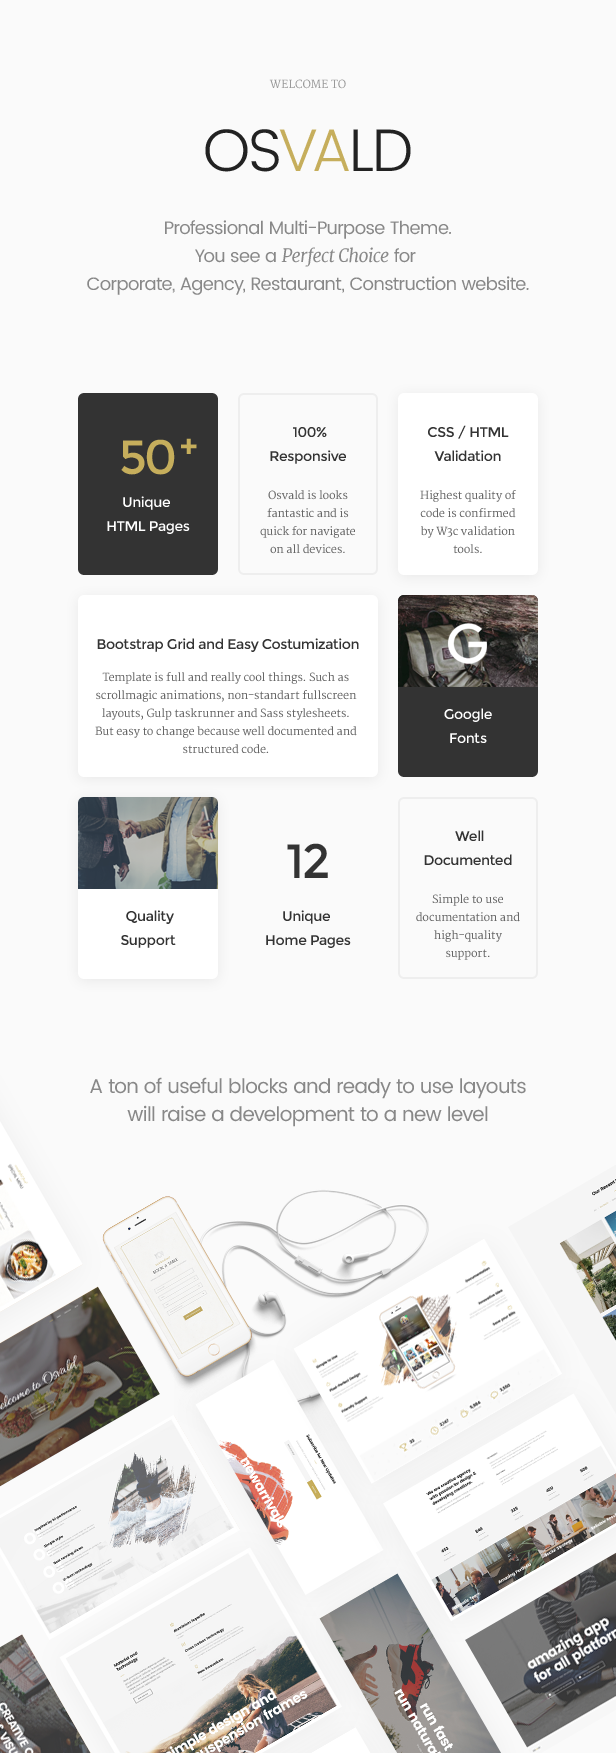 Professional Multi-Purpose Theme - Osvald